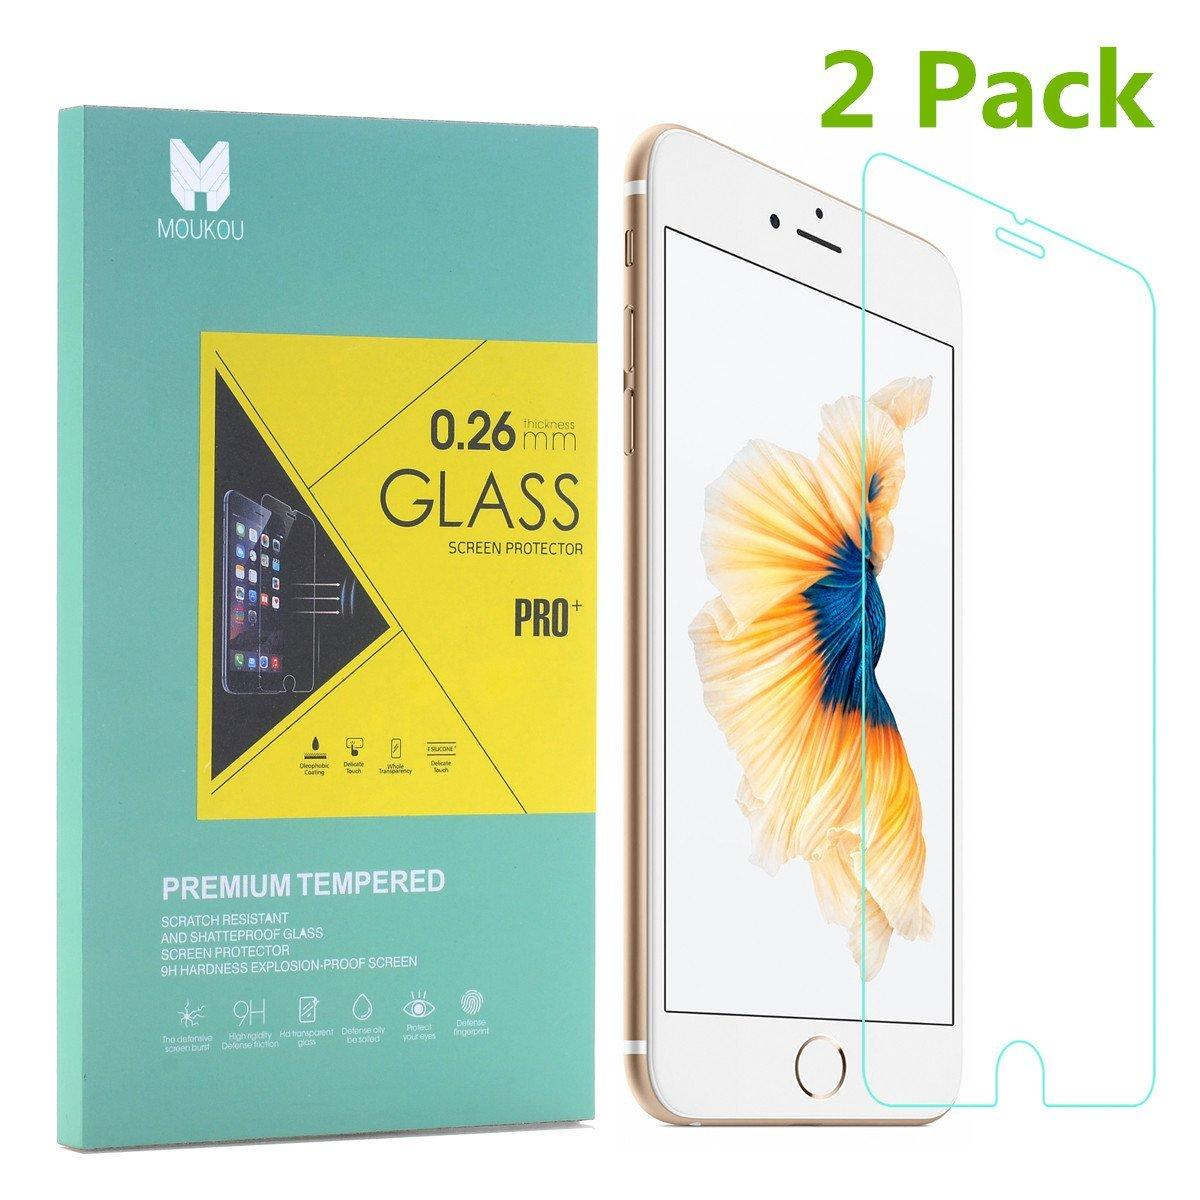 $2.99 MouKou iPhone 6  Screen Protector Tempered Glass Screen Protectors 2-Pack Rounded Edges for iPhone 6/6s 4.7